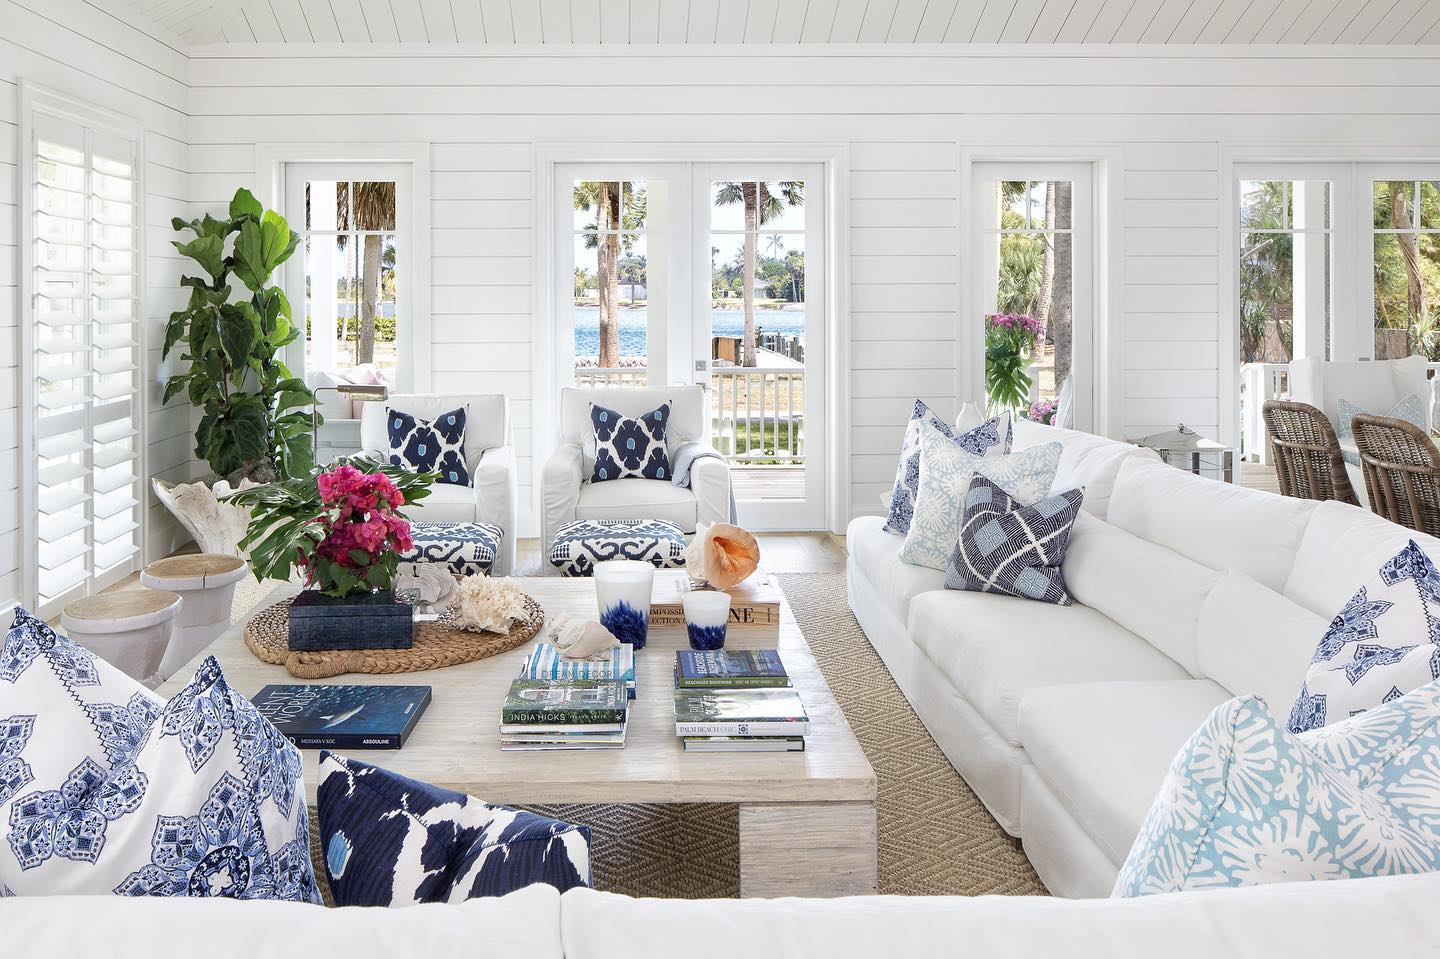 Beach house home decor in coastal white and classic blue color palette